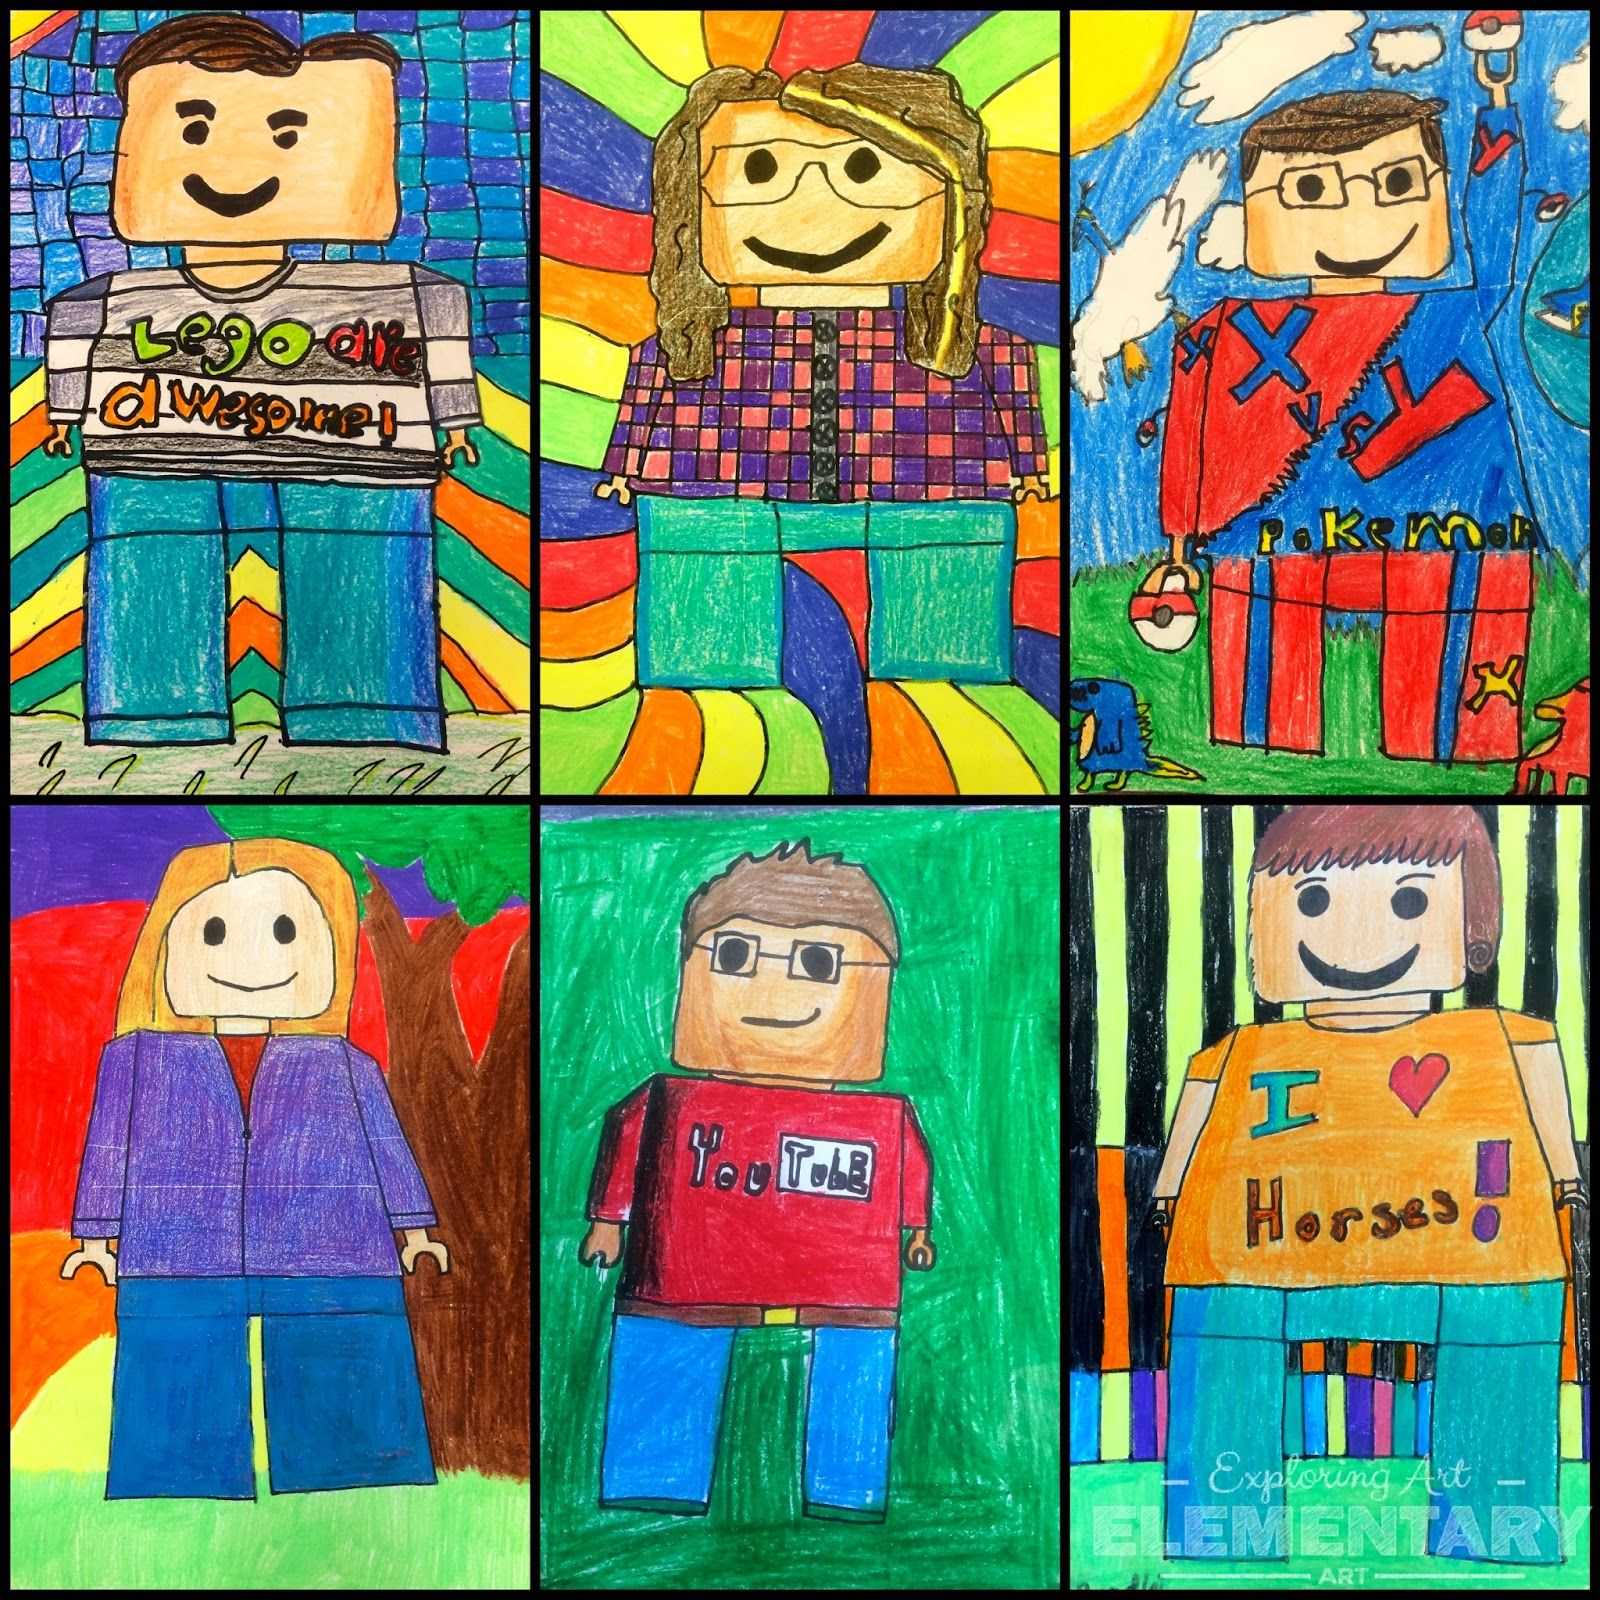 They Re Back 5th Grade Lego Self Portraits Exploring Art